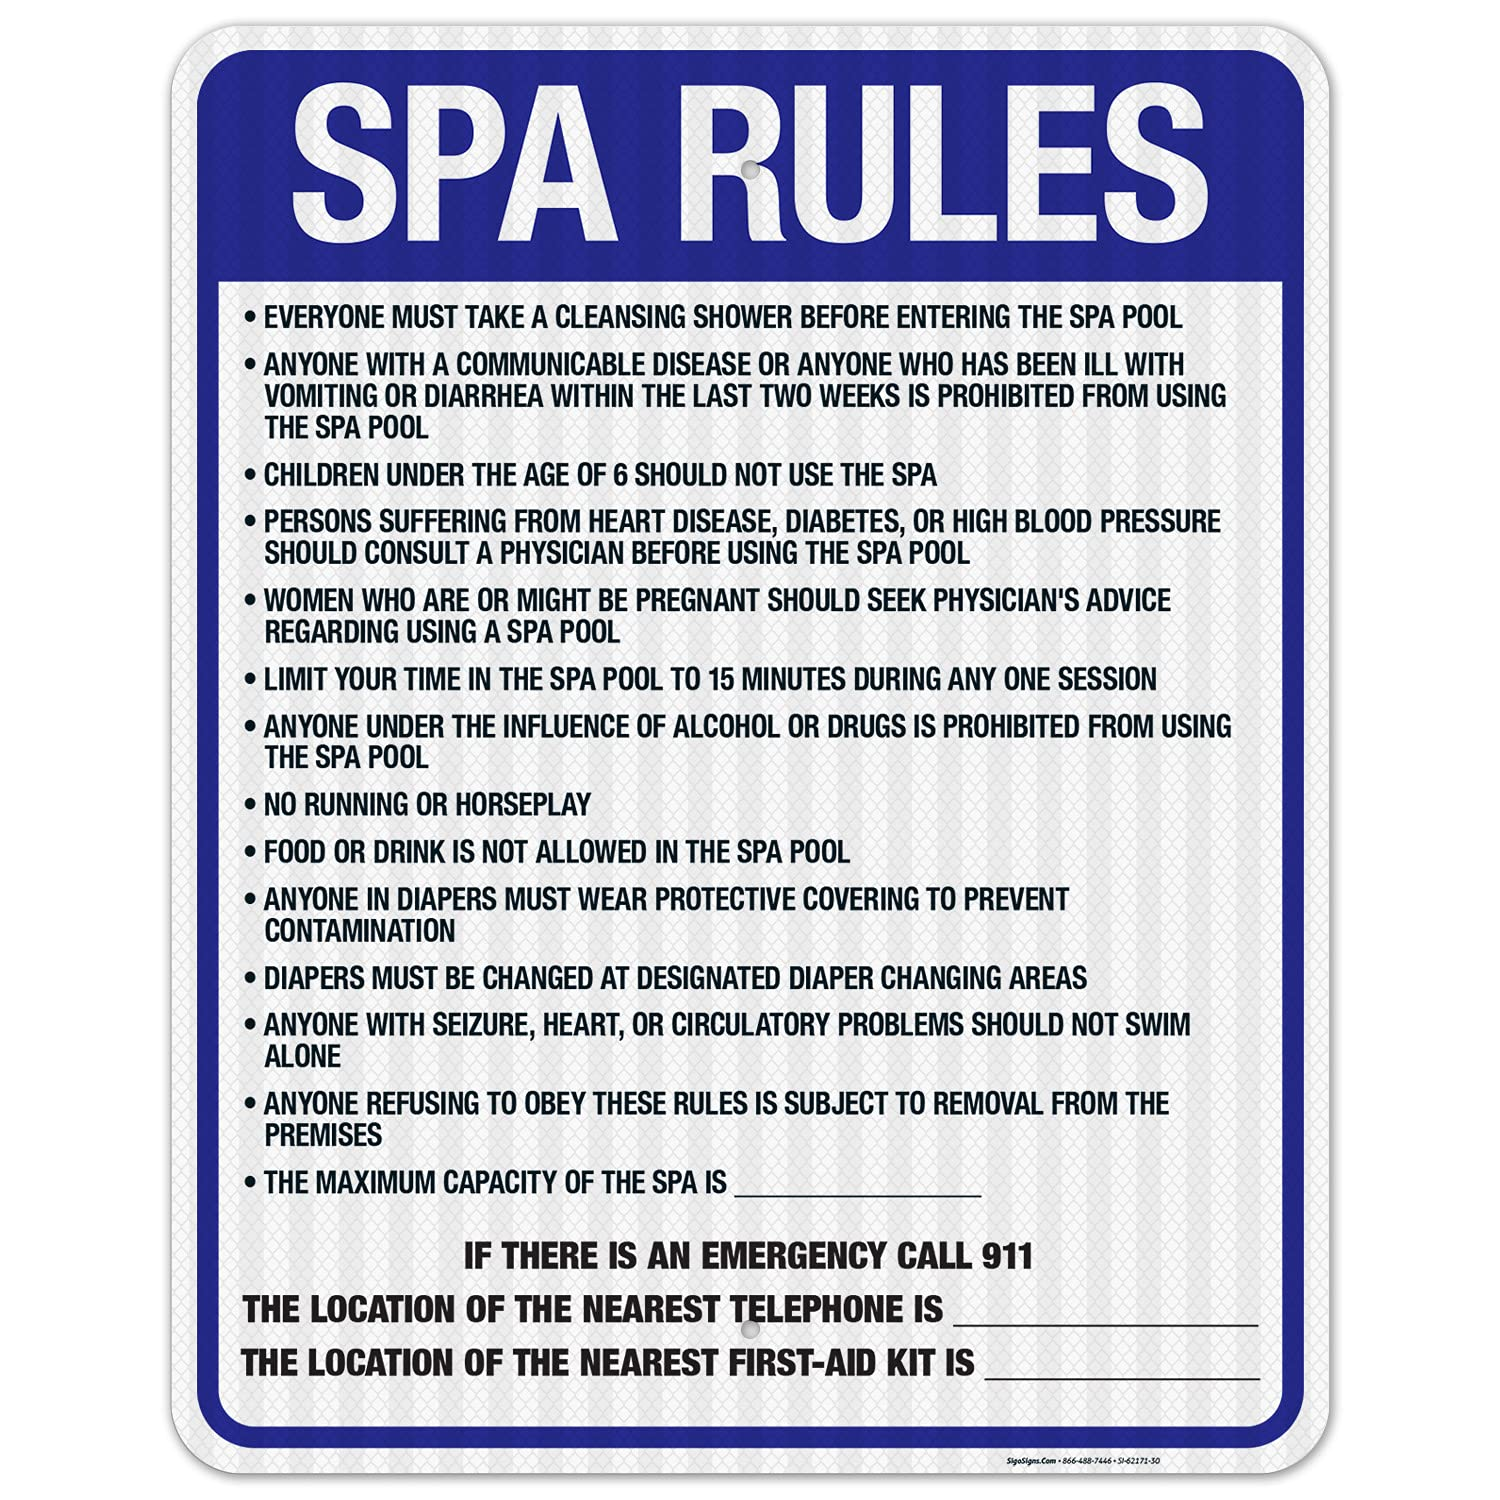 Washington Spa Rules Sign Complies Poo State Classic Charlotte Mall of with